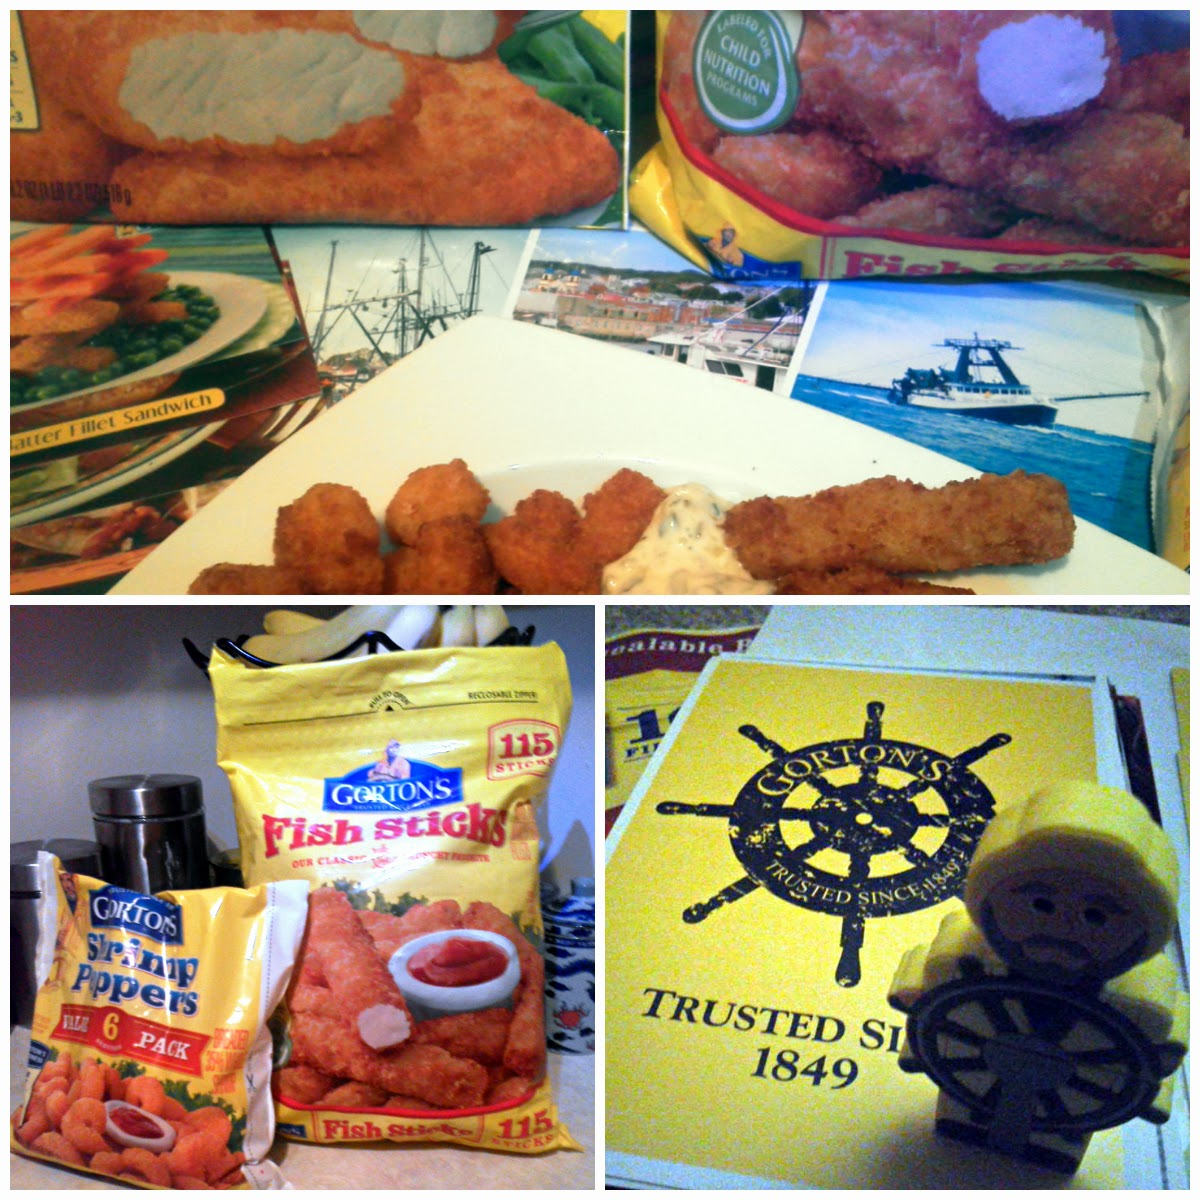 Life according to greenvics gortons fisherman for Are fish sticks good for you